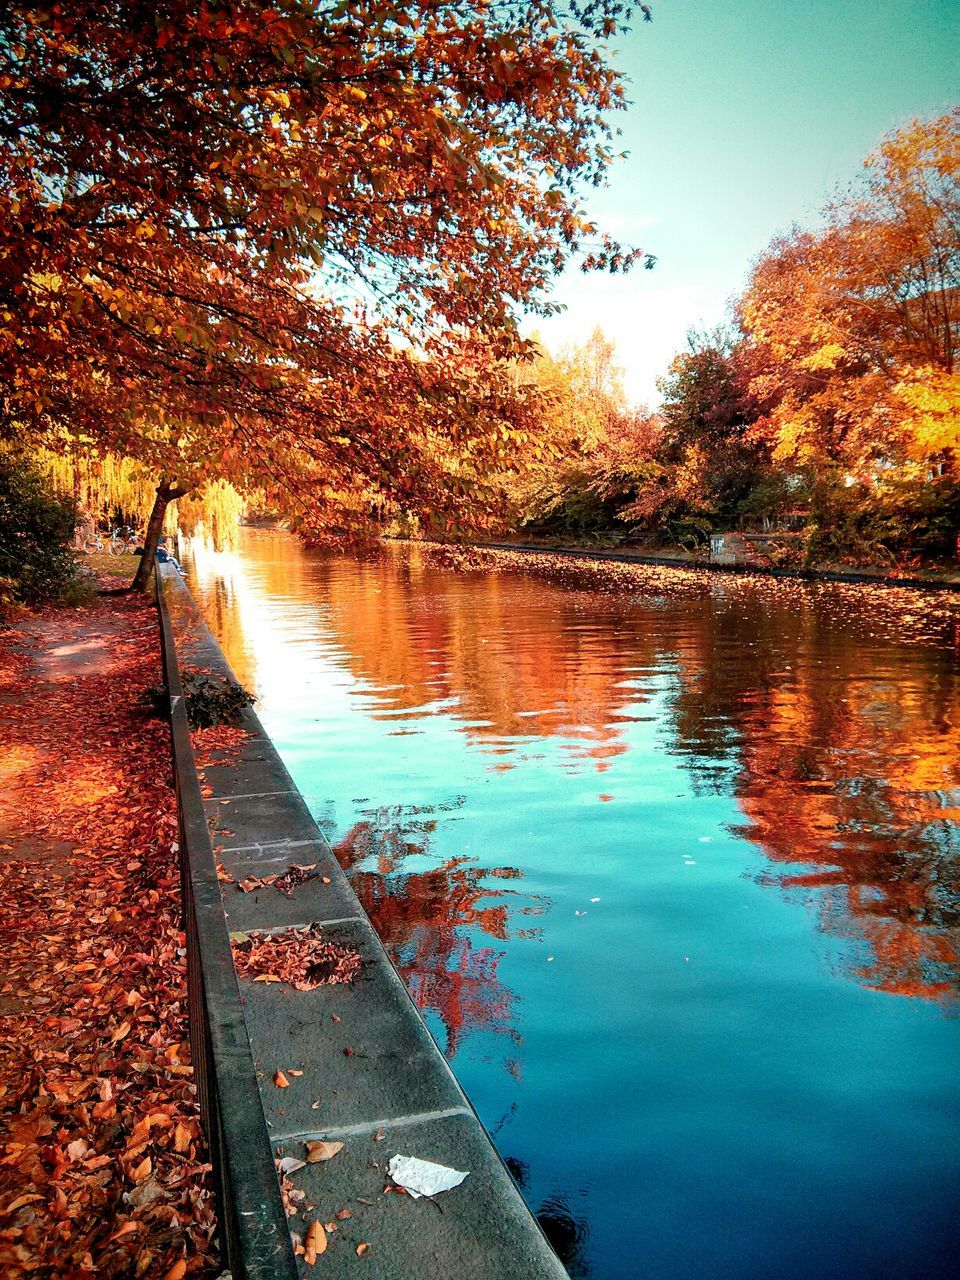 Autumn Trees Reflecting In Water Canal